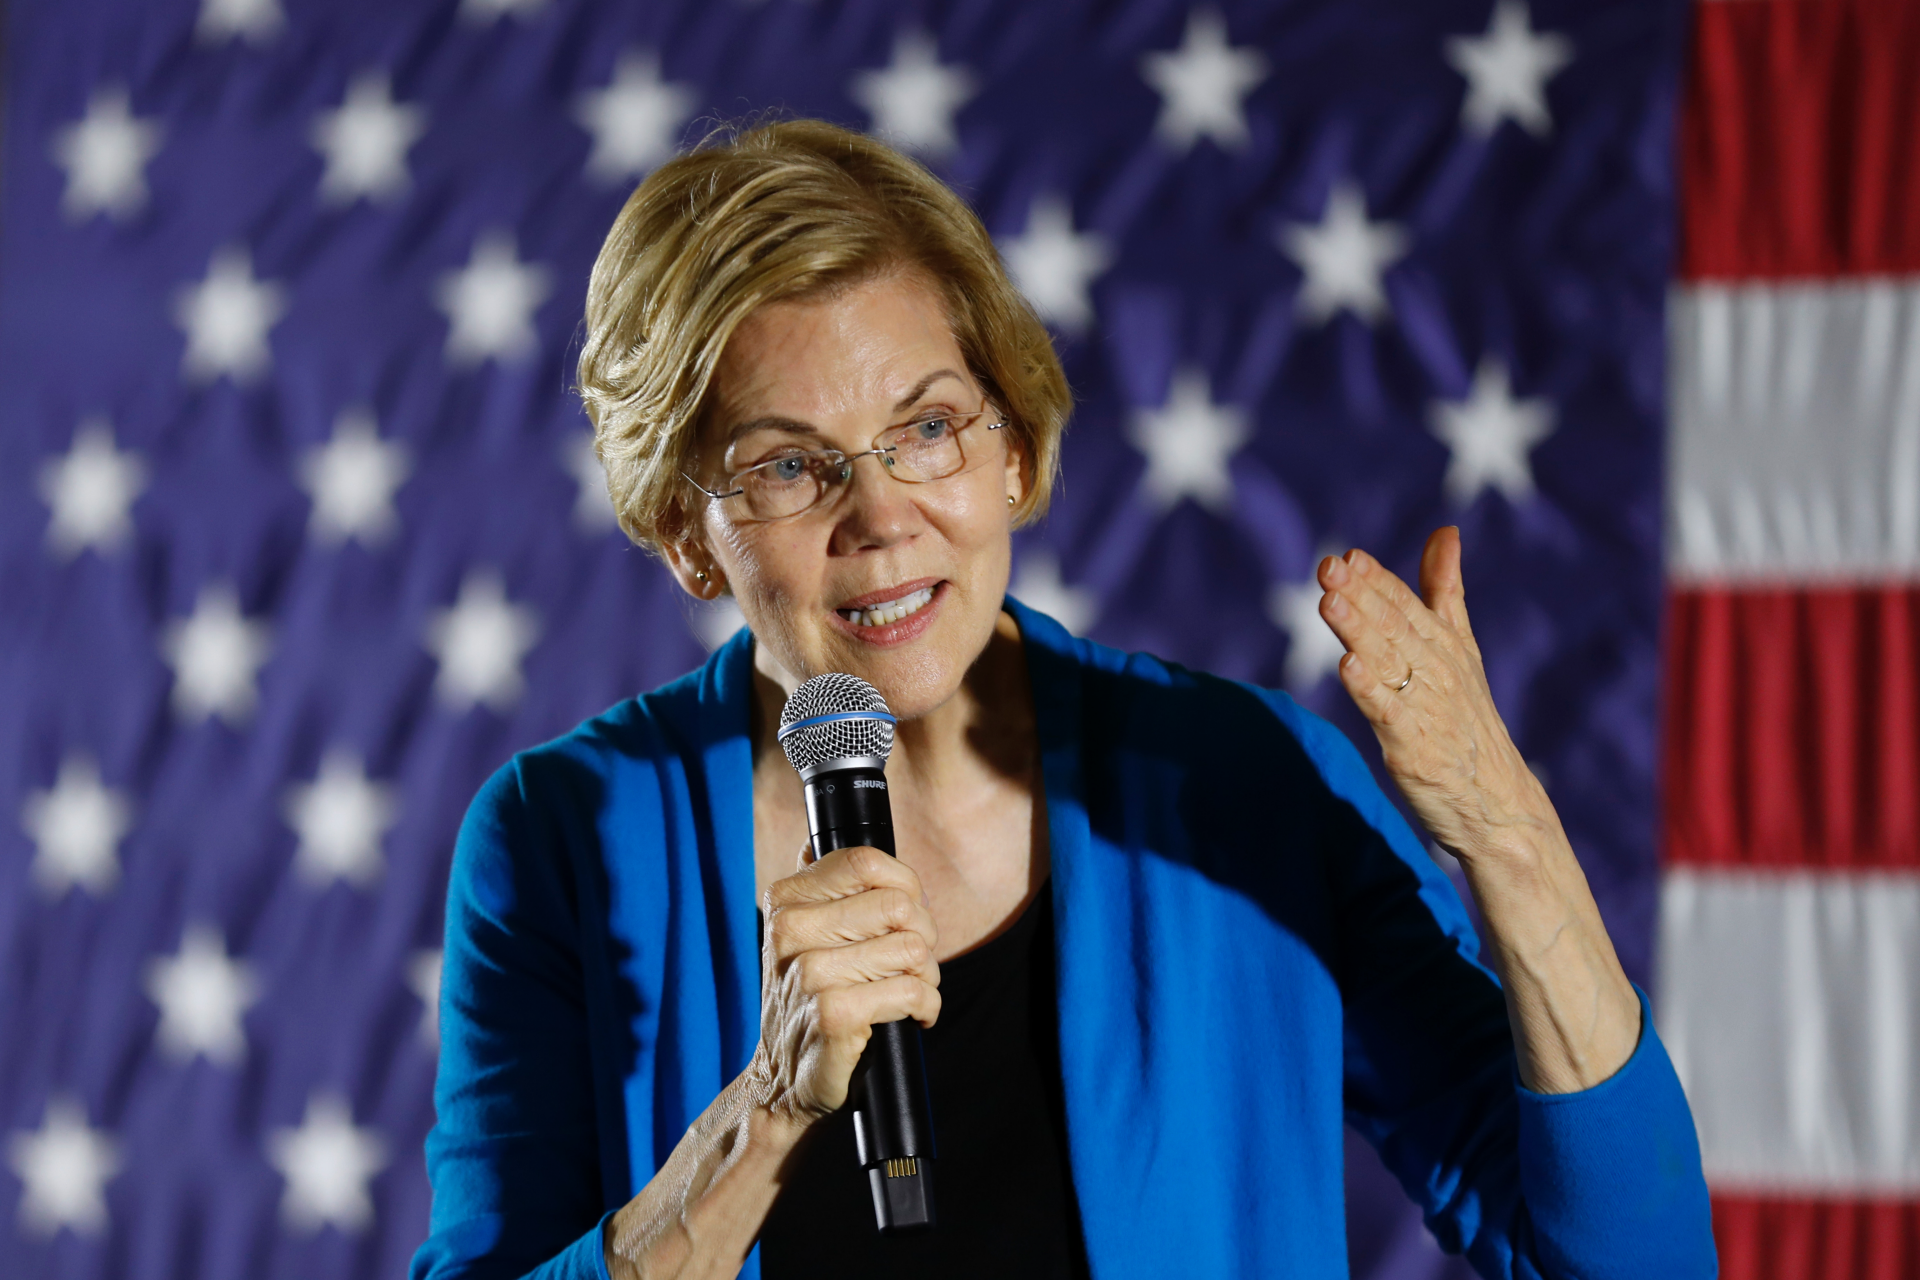 Warren has a spot-on lookalike she met face-to-face